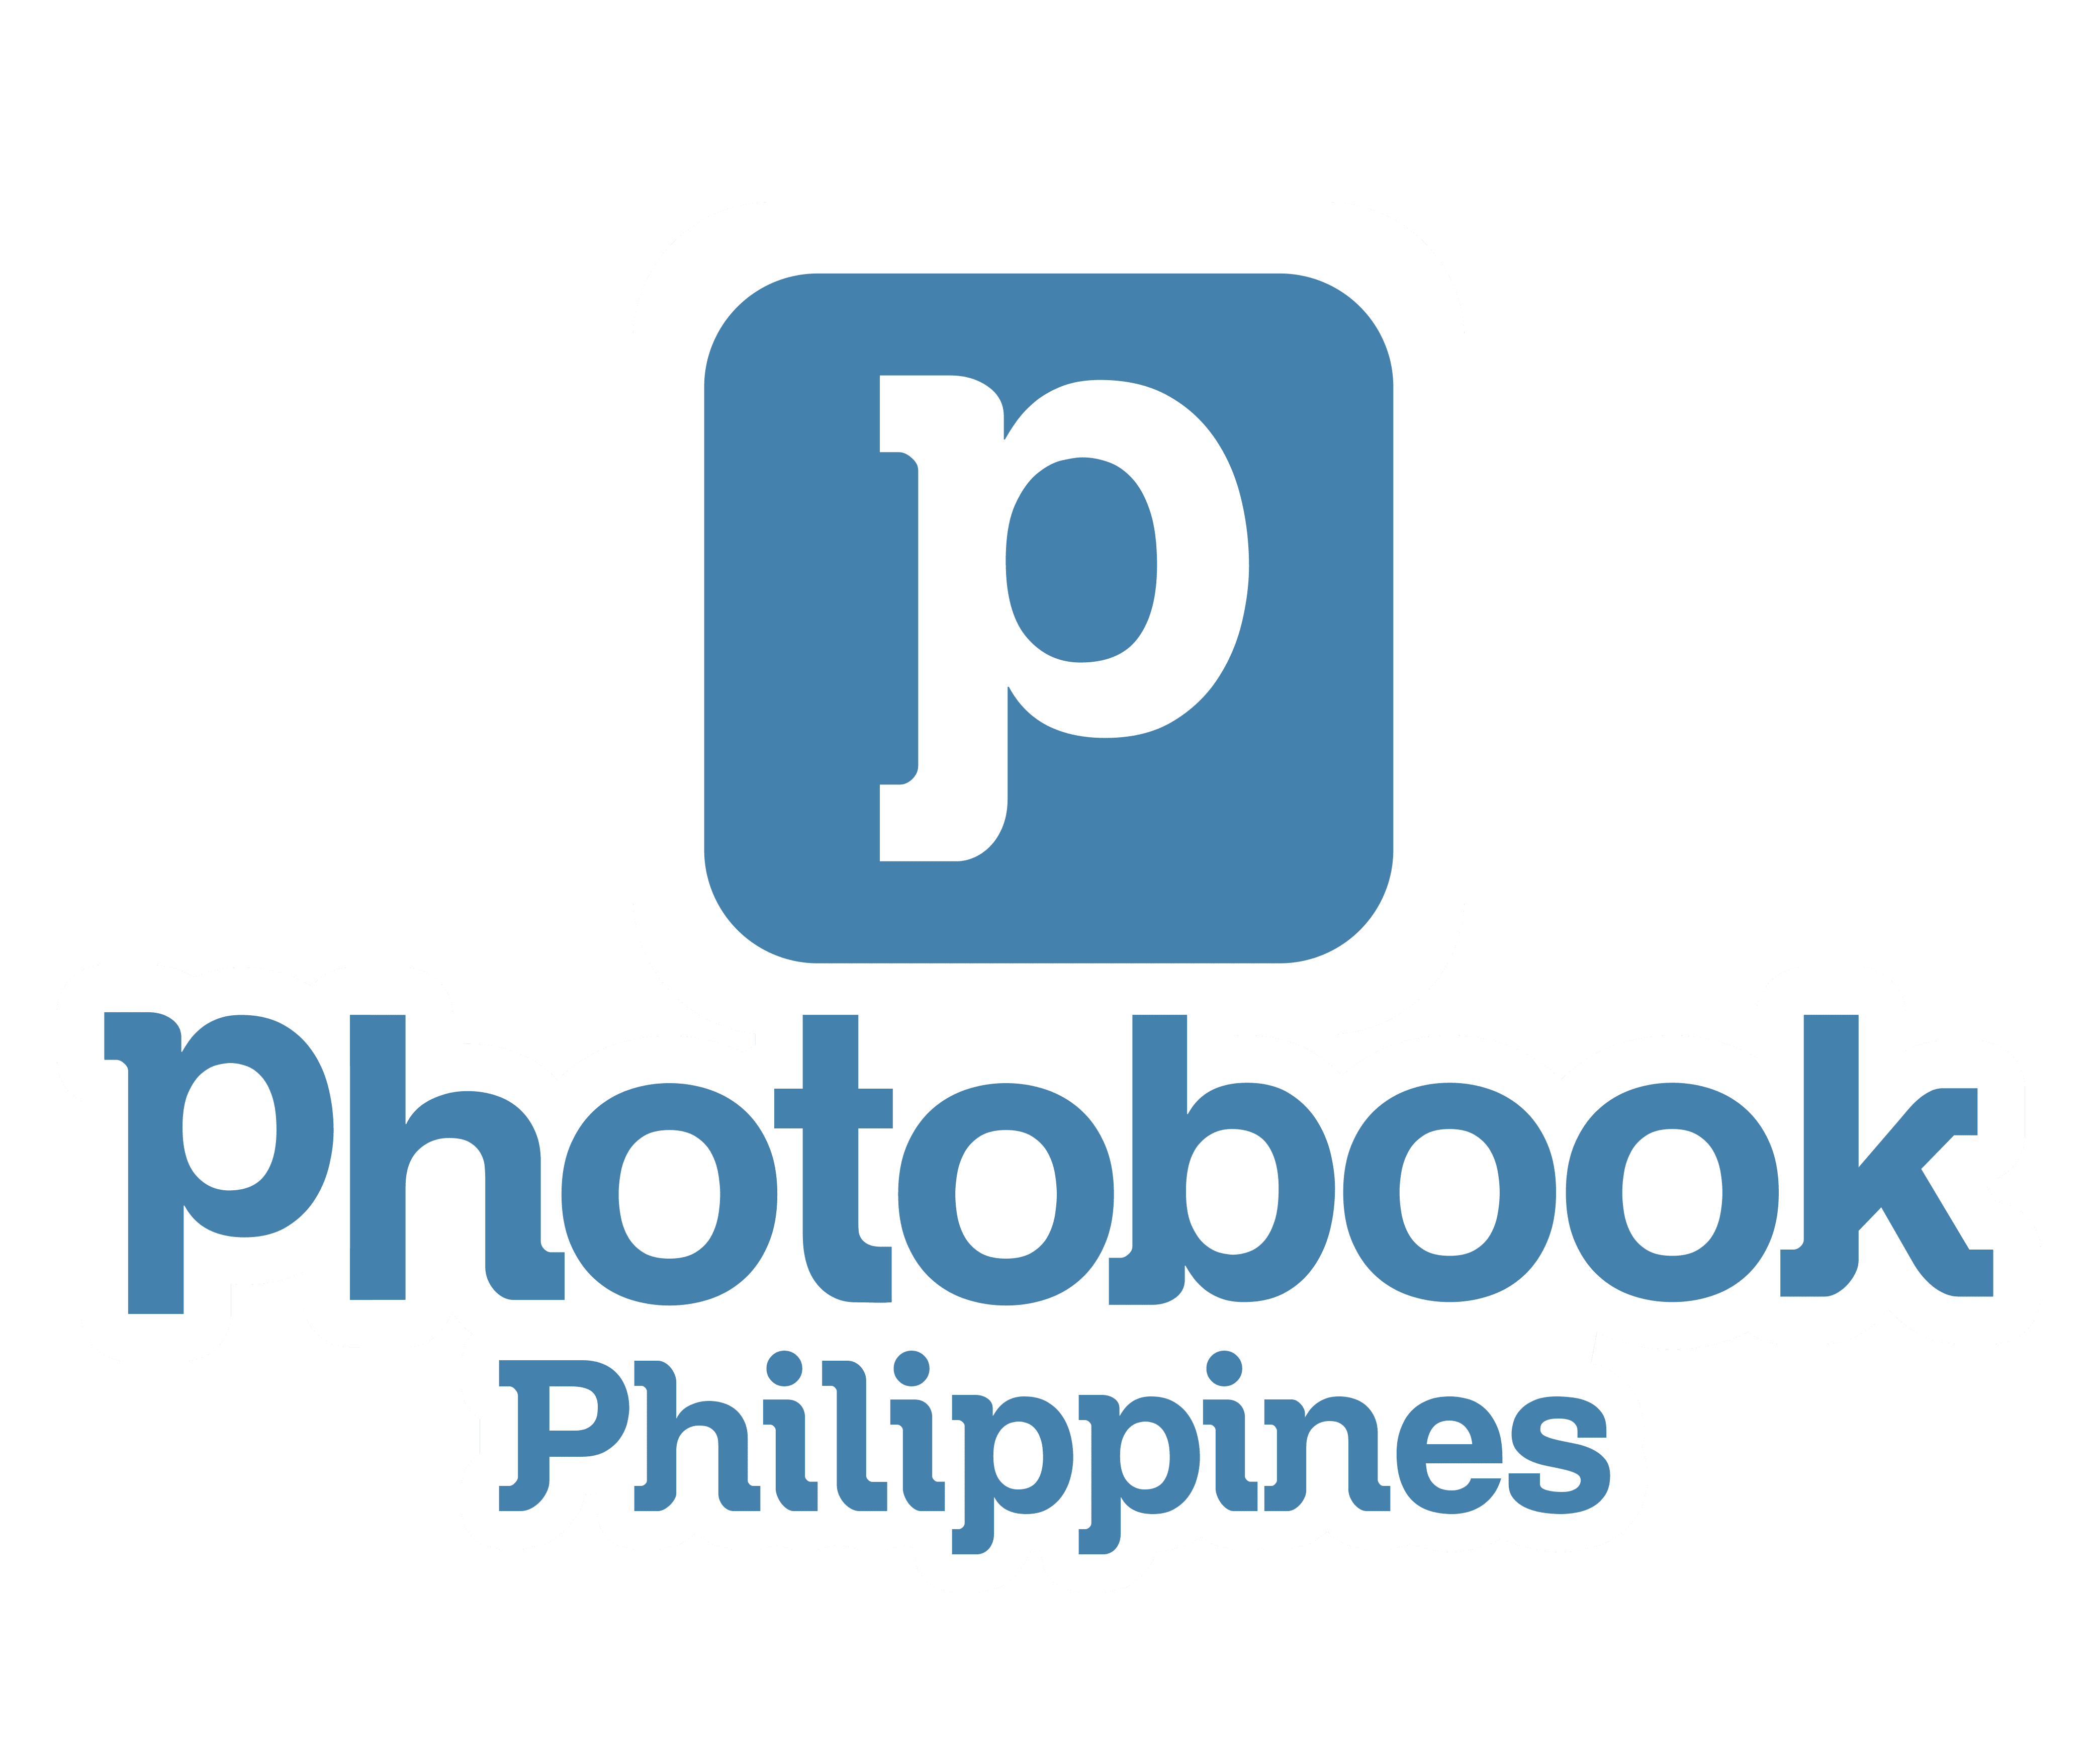 Photobook Philippines Coupons & Voucher codes 2017